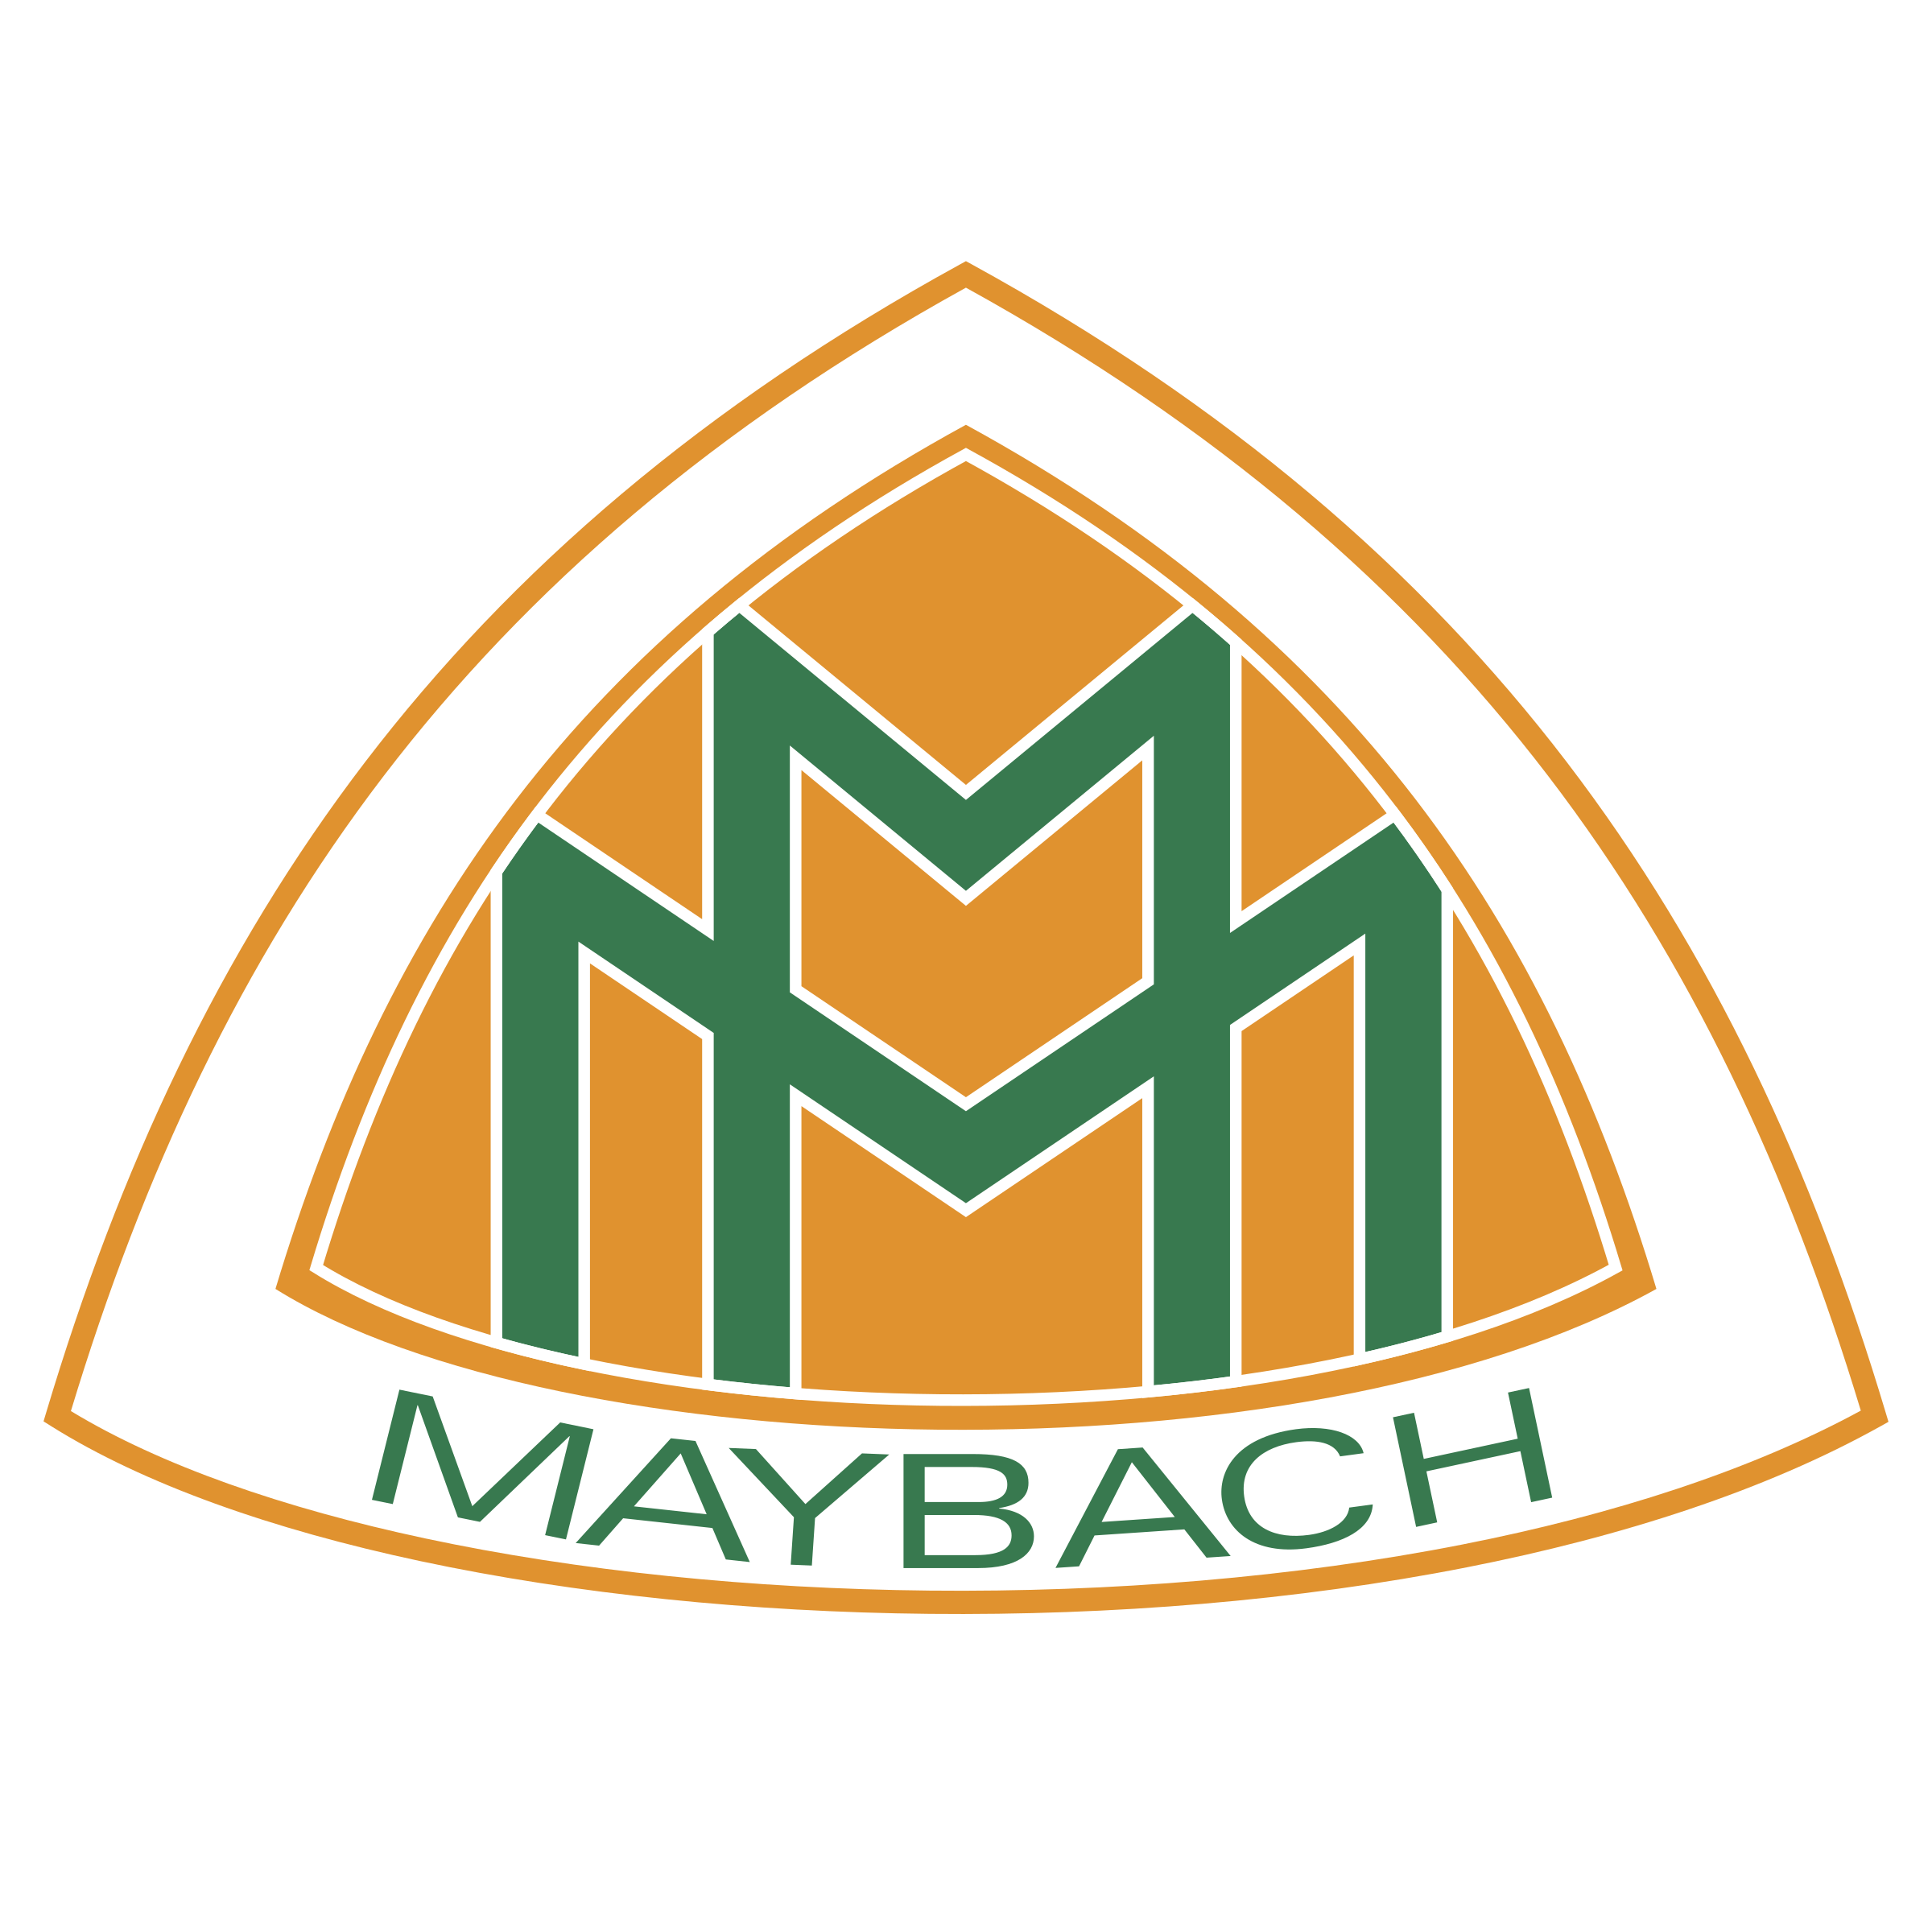 maybach logo png transparent & svg vector - freebie supply